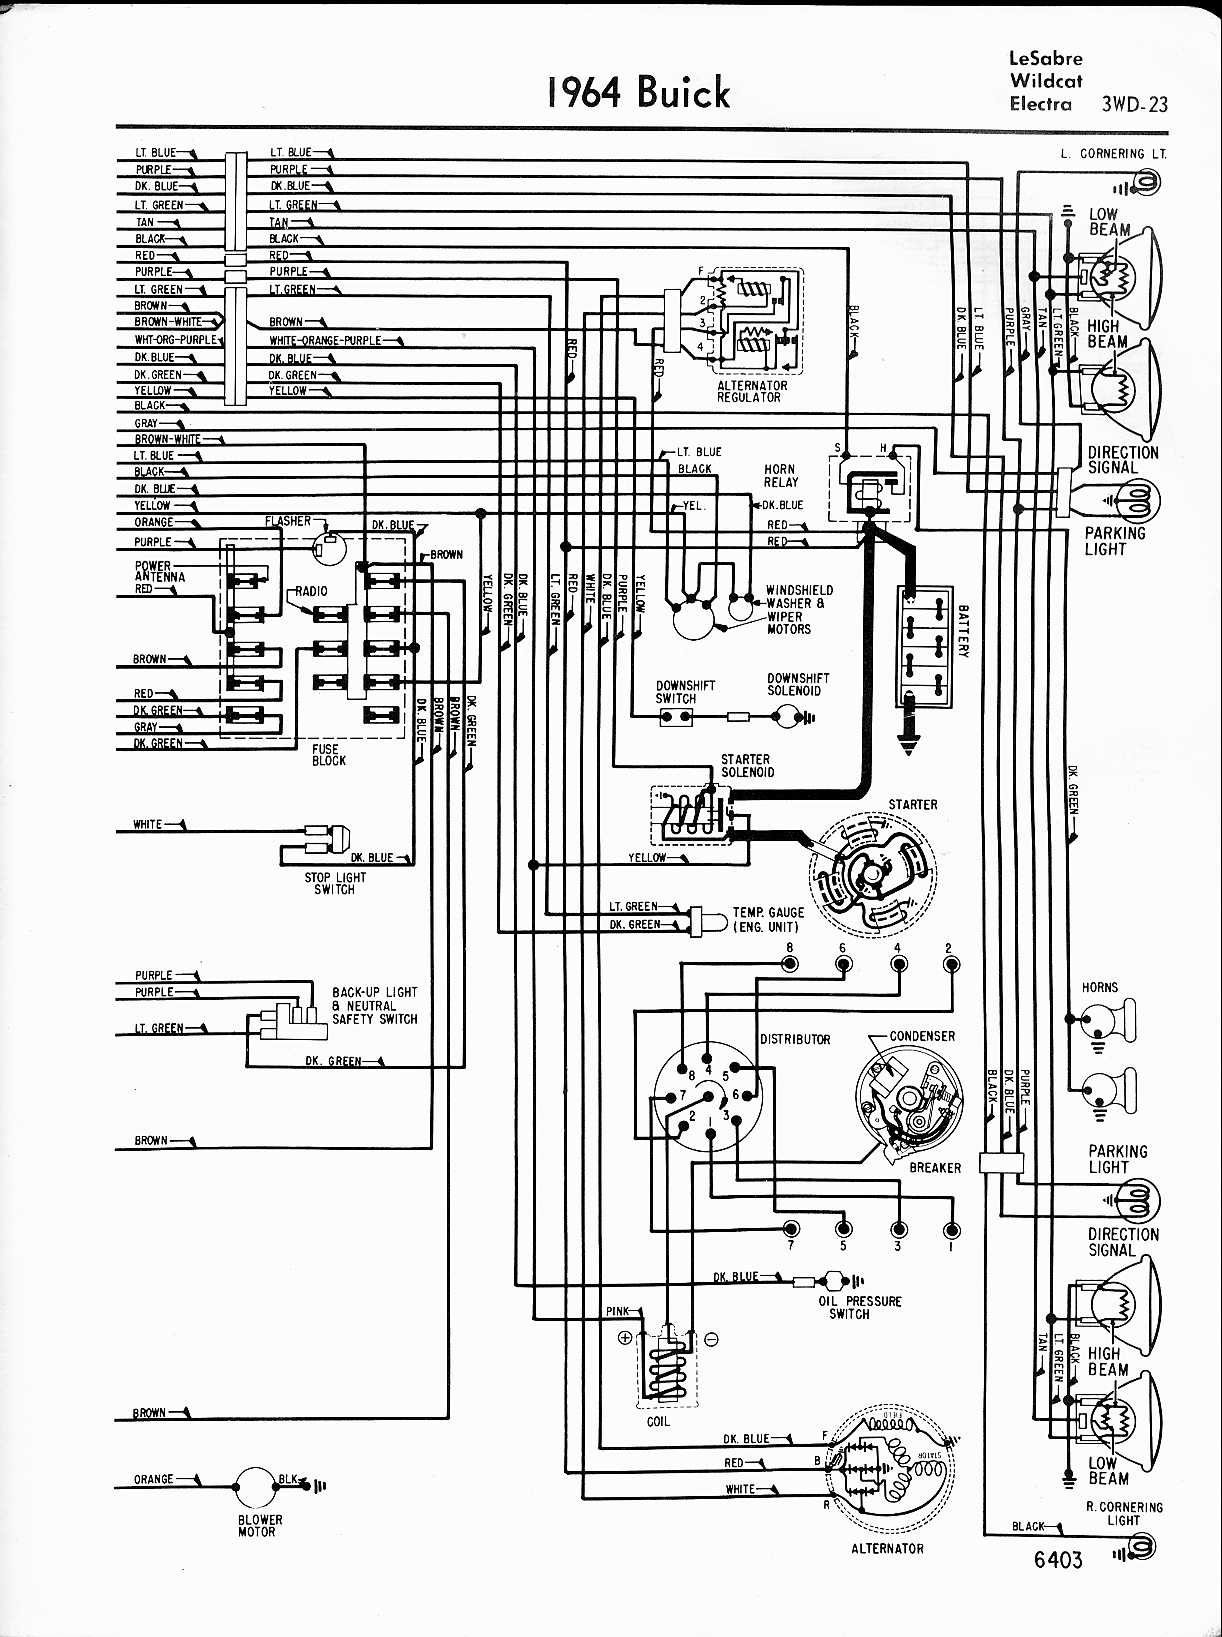 buick wiring diagrams 1957 1965 1964 lesabre wildcat electra right half